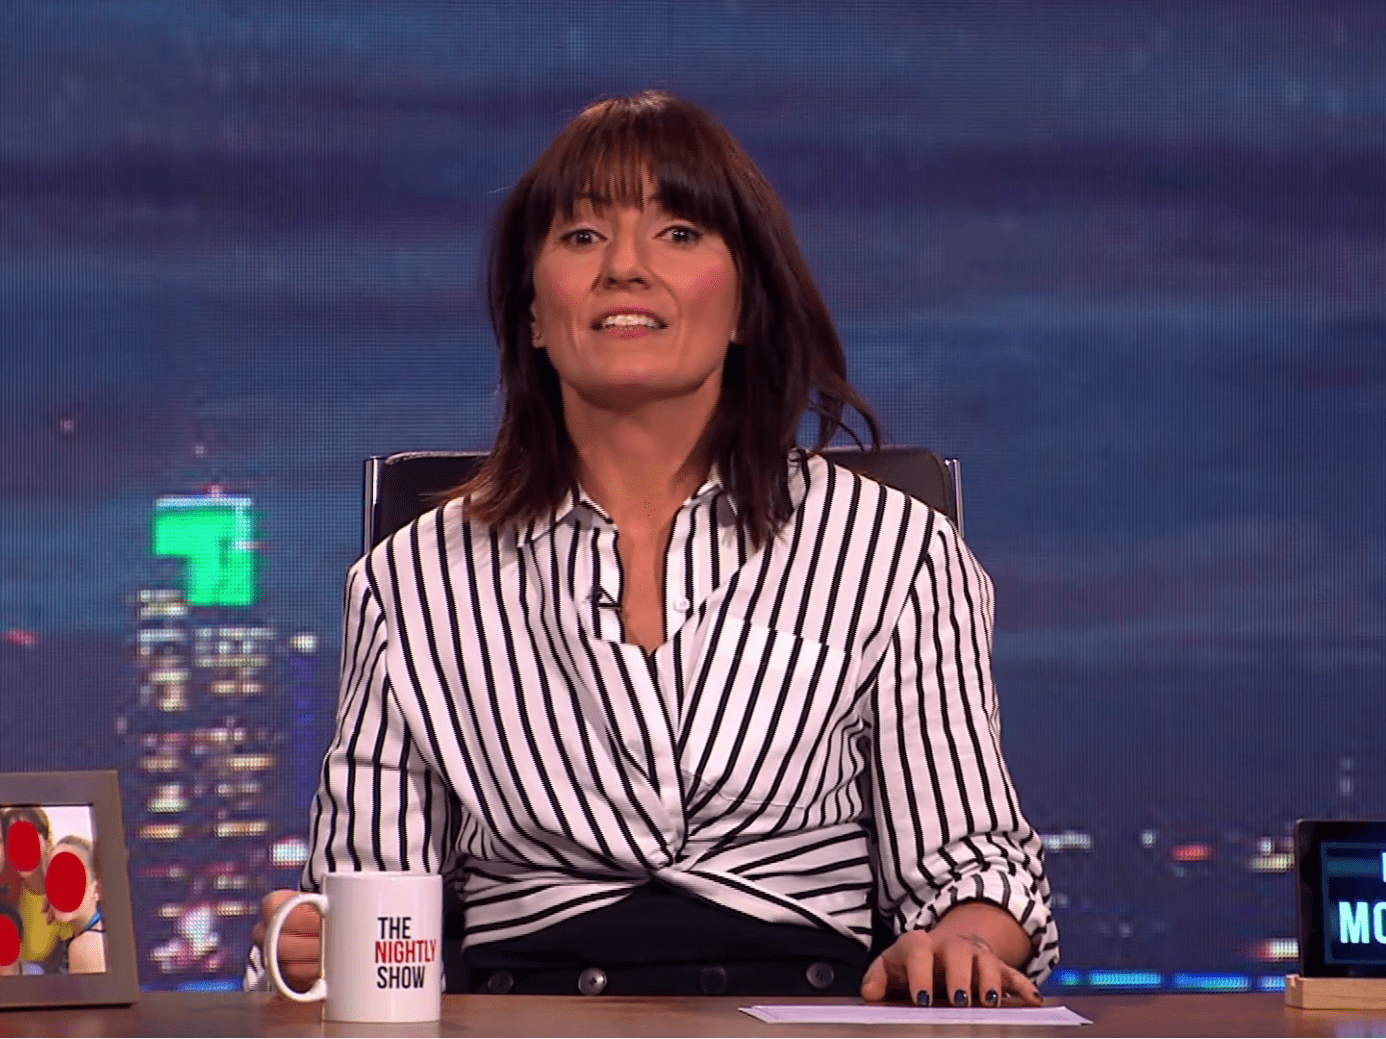 Davina McCall hosted The Nightly Show for the first time and some people hated it even more